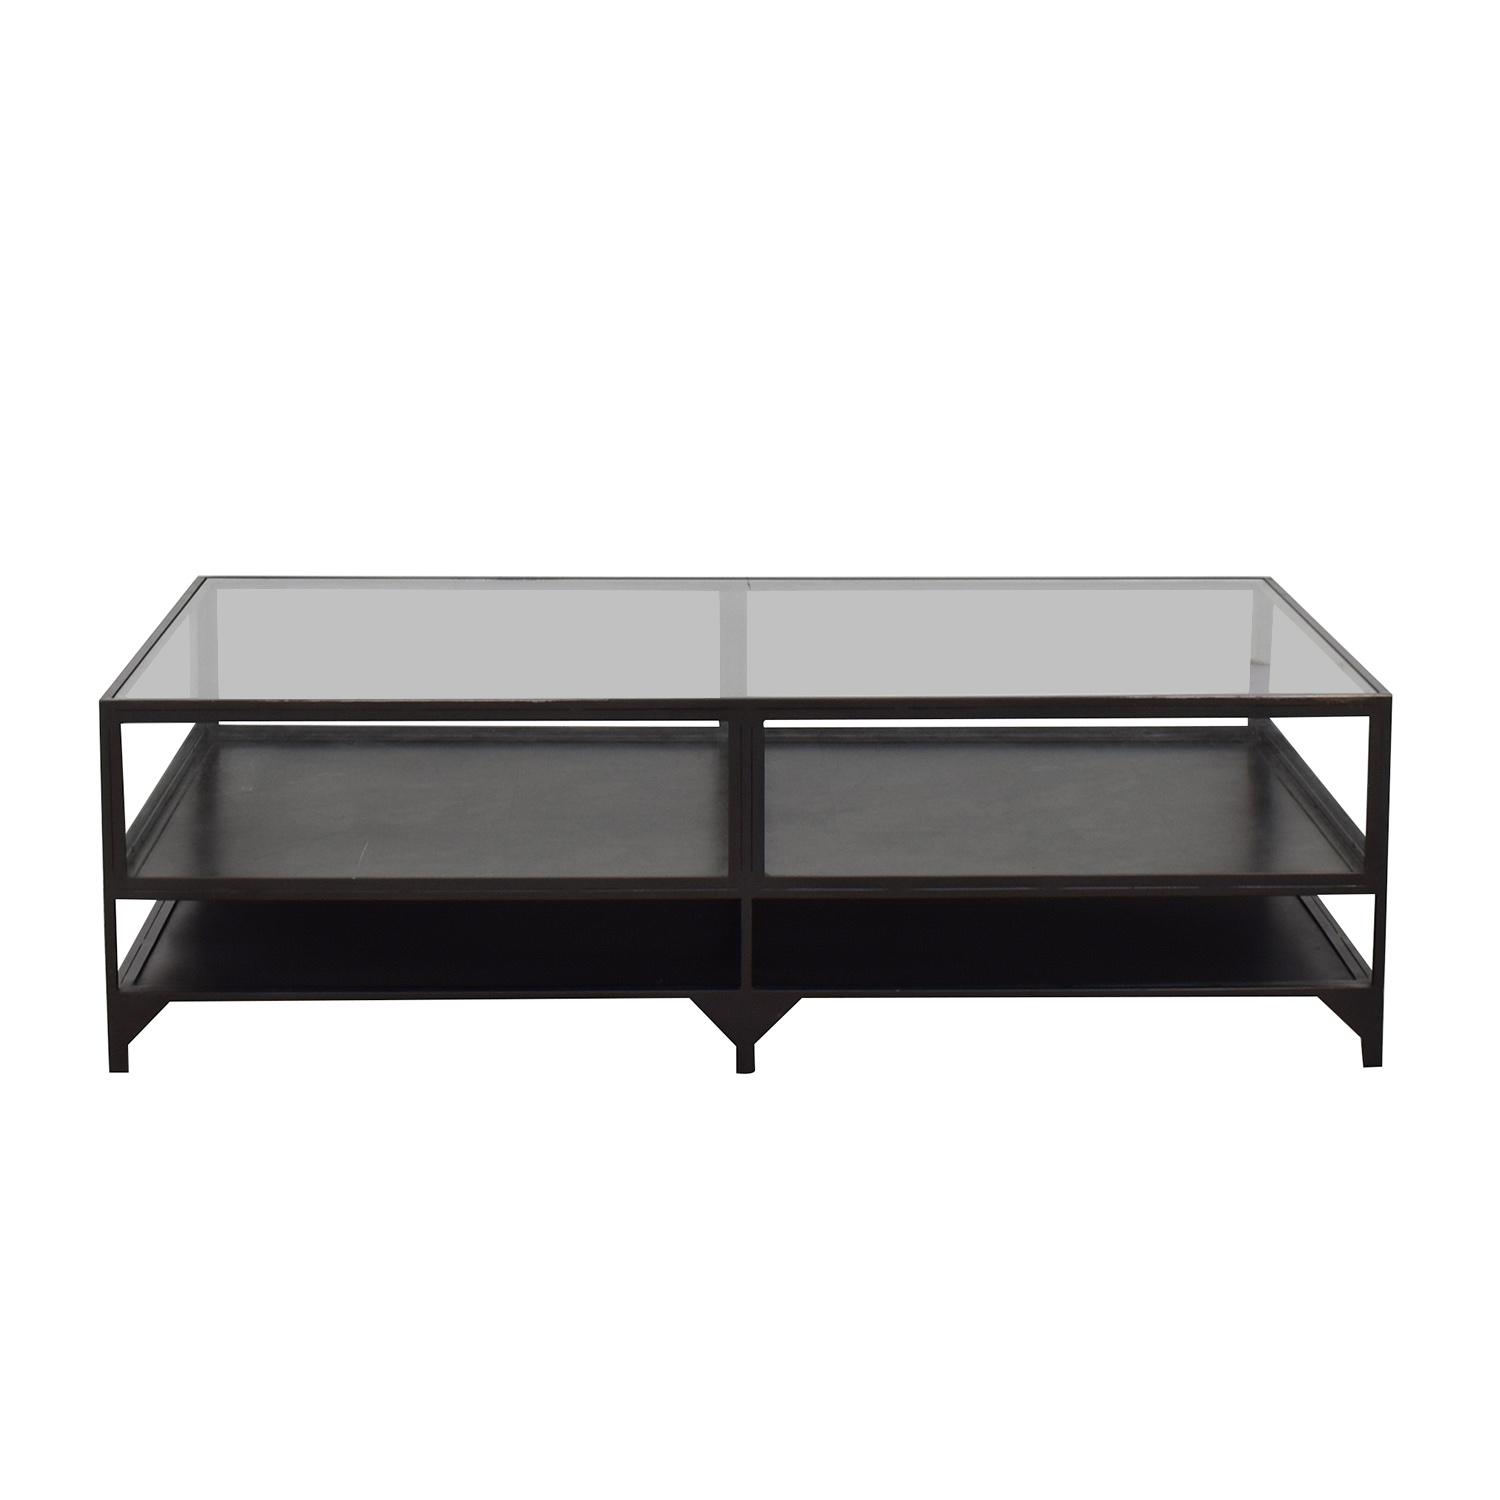 West Elm West Elm Shadow Box Coffee Table coupon